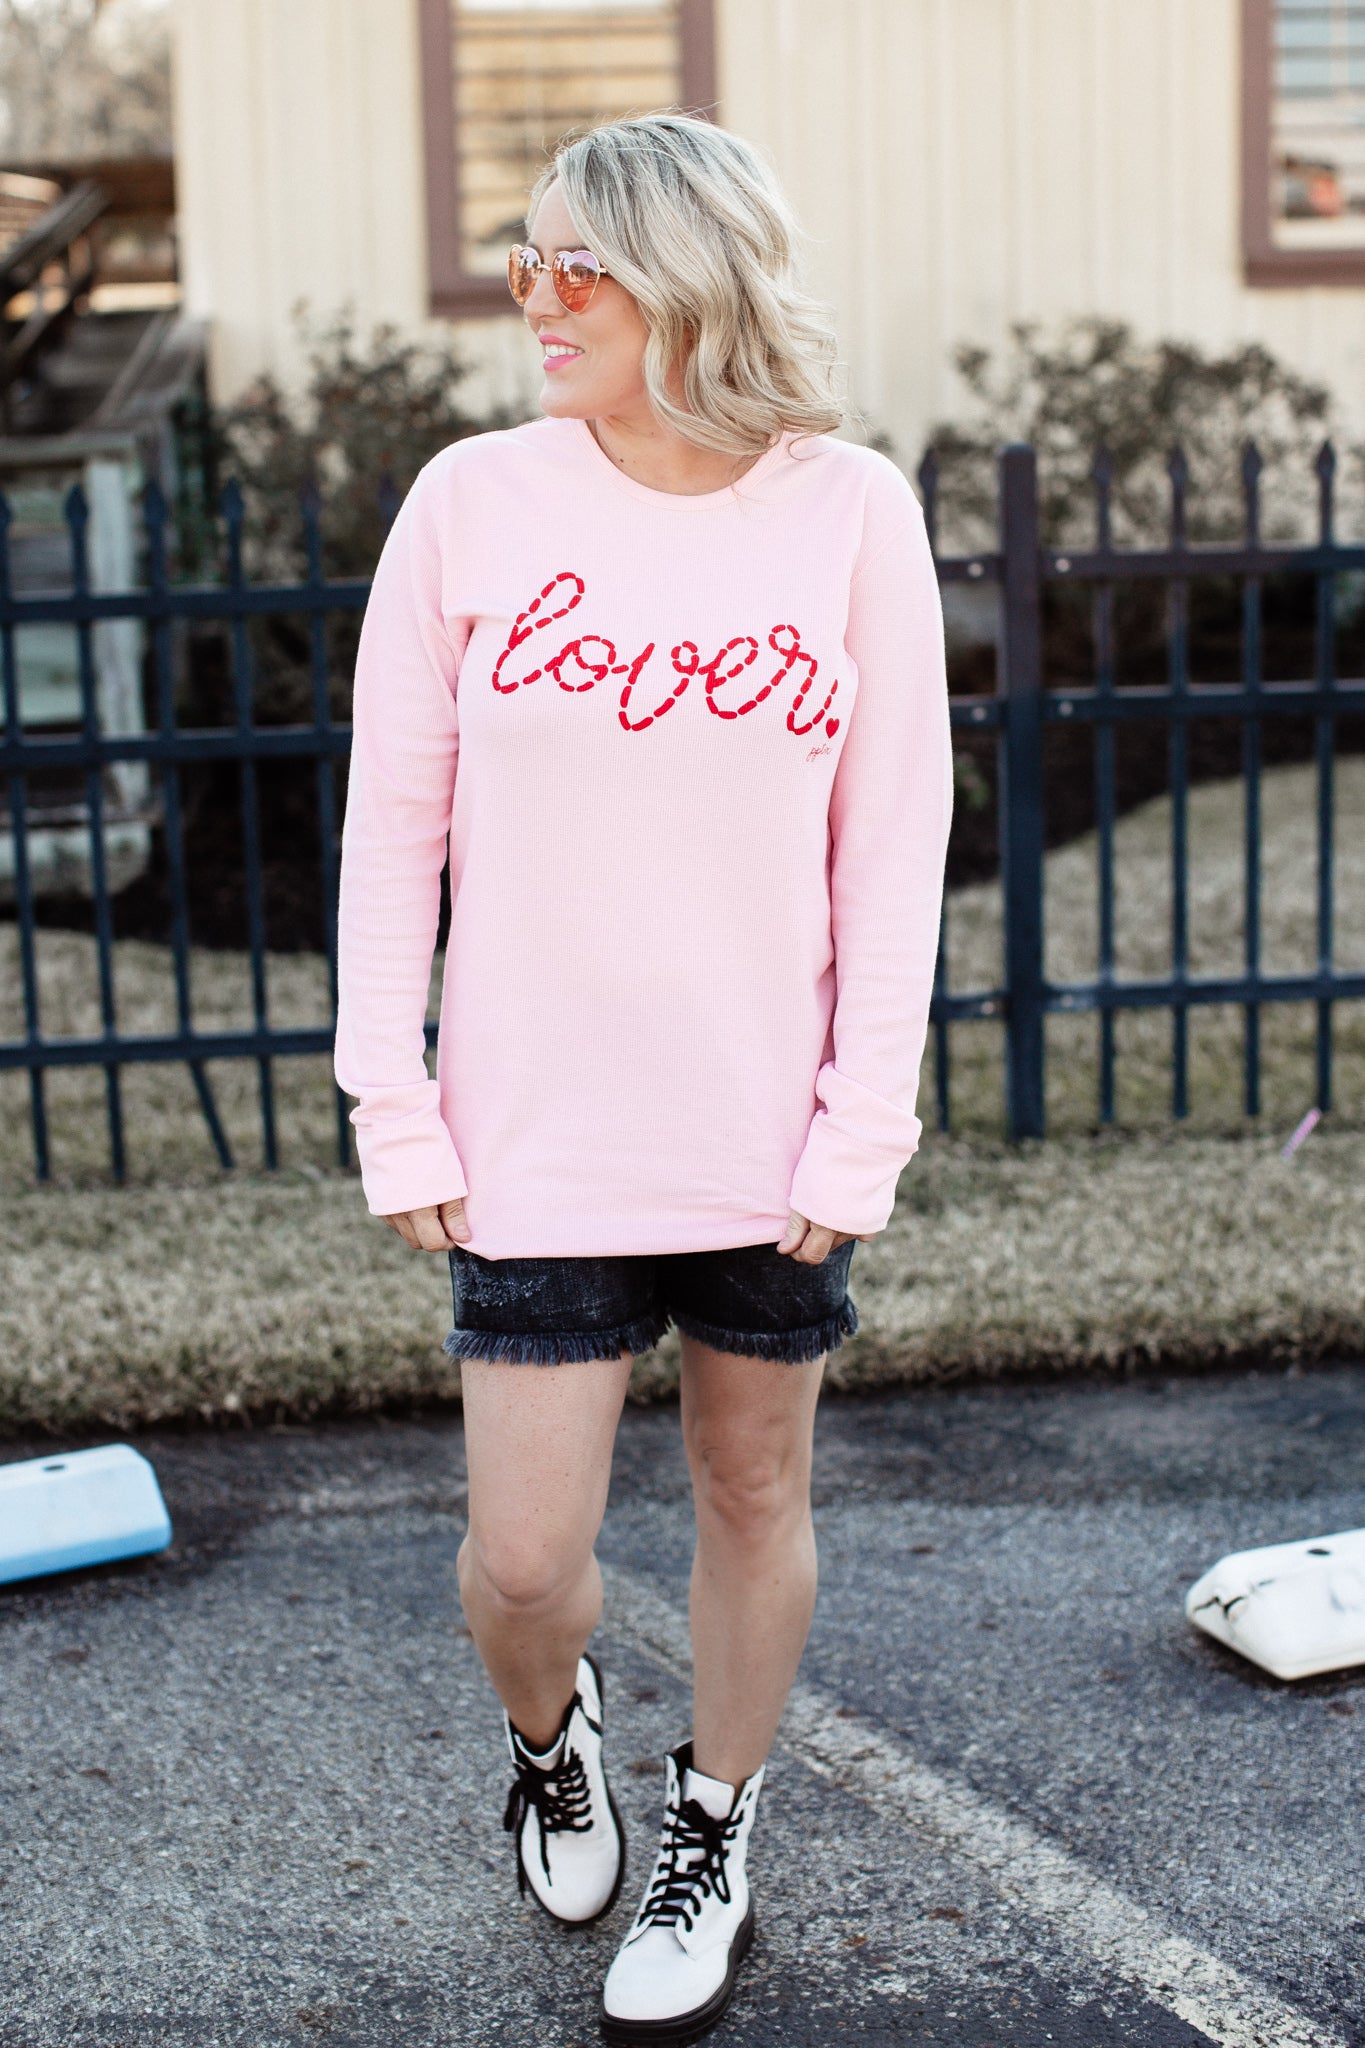 Lover Thermal (S-2X)